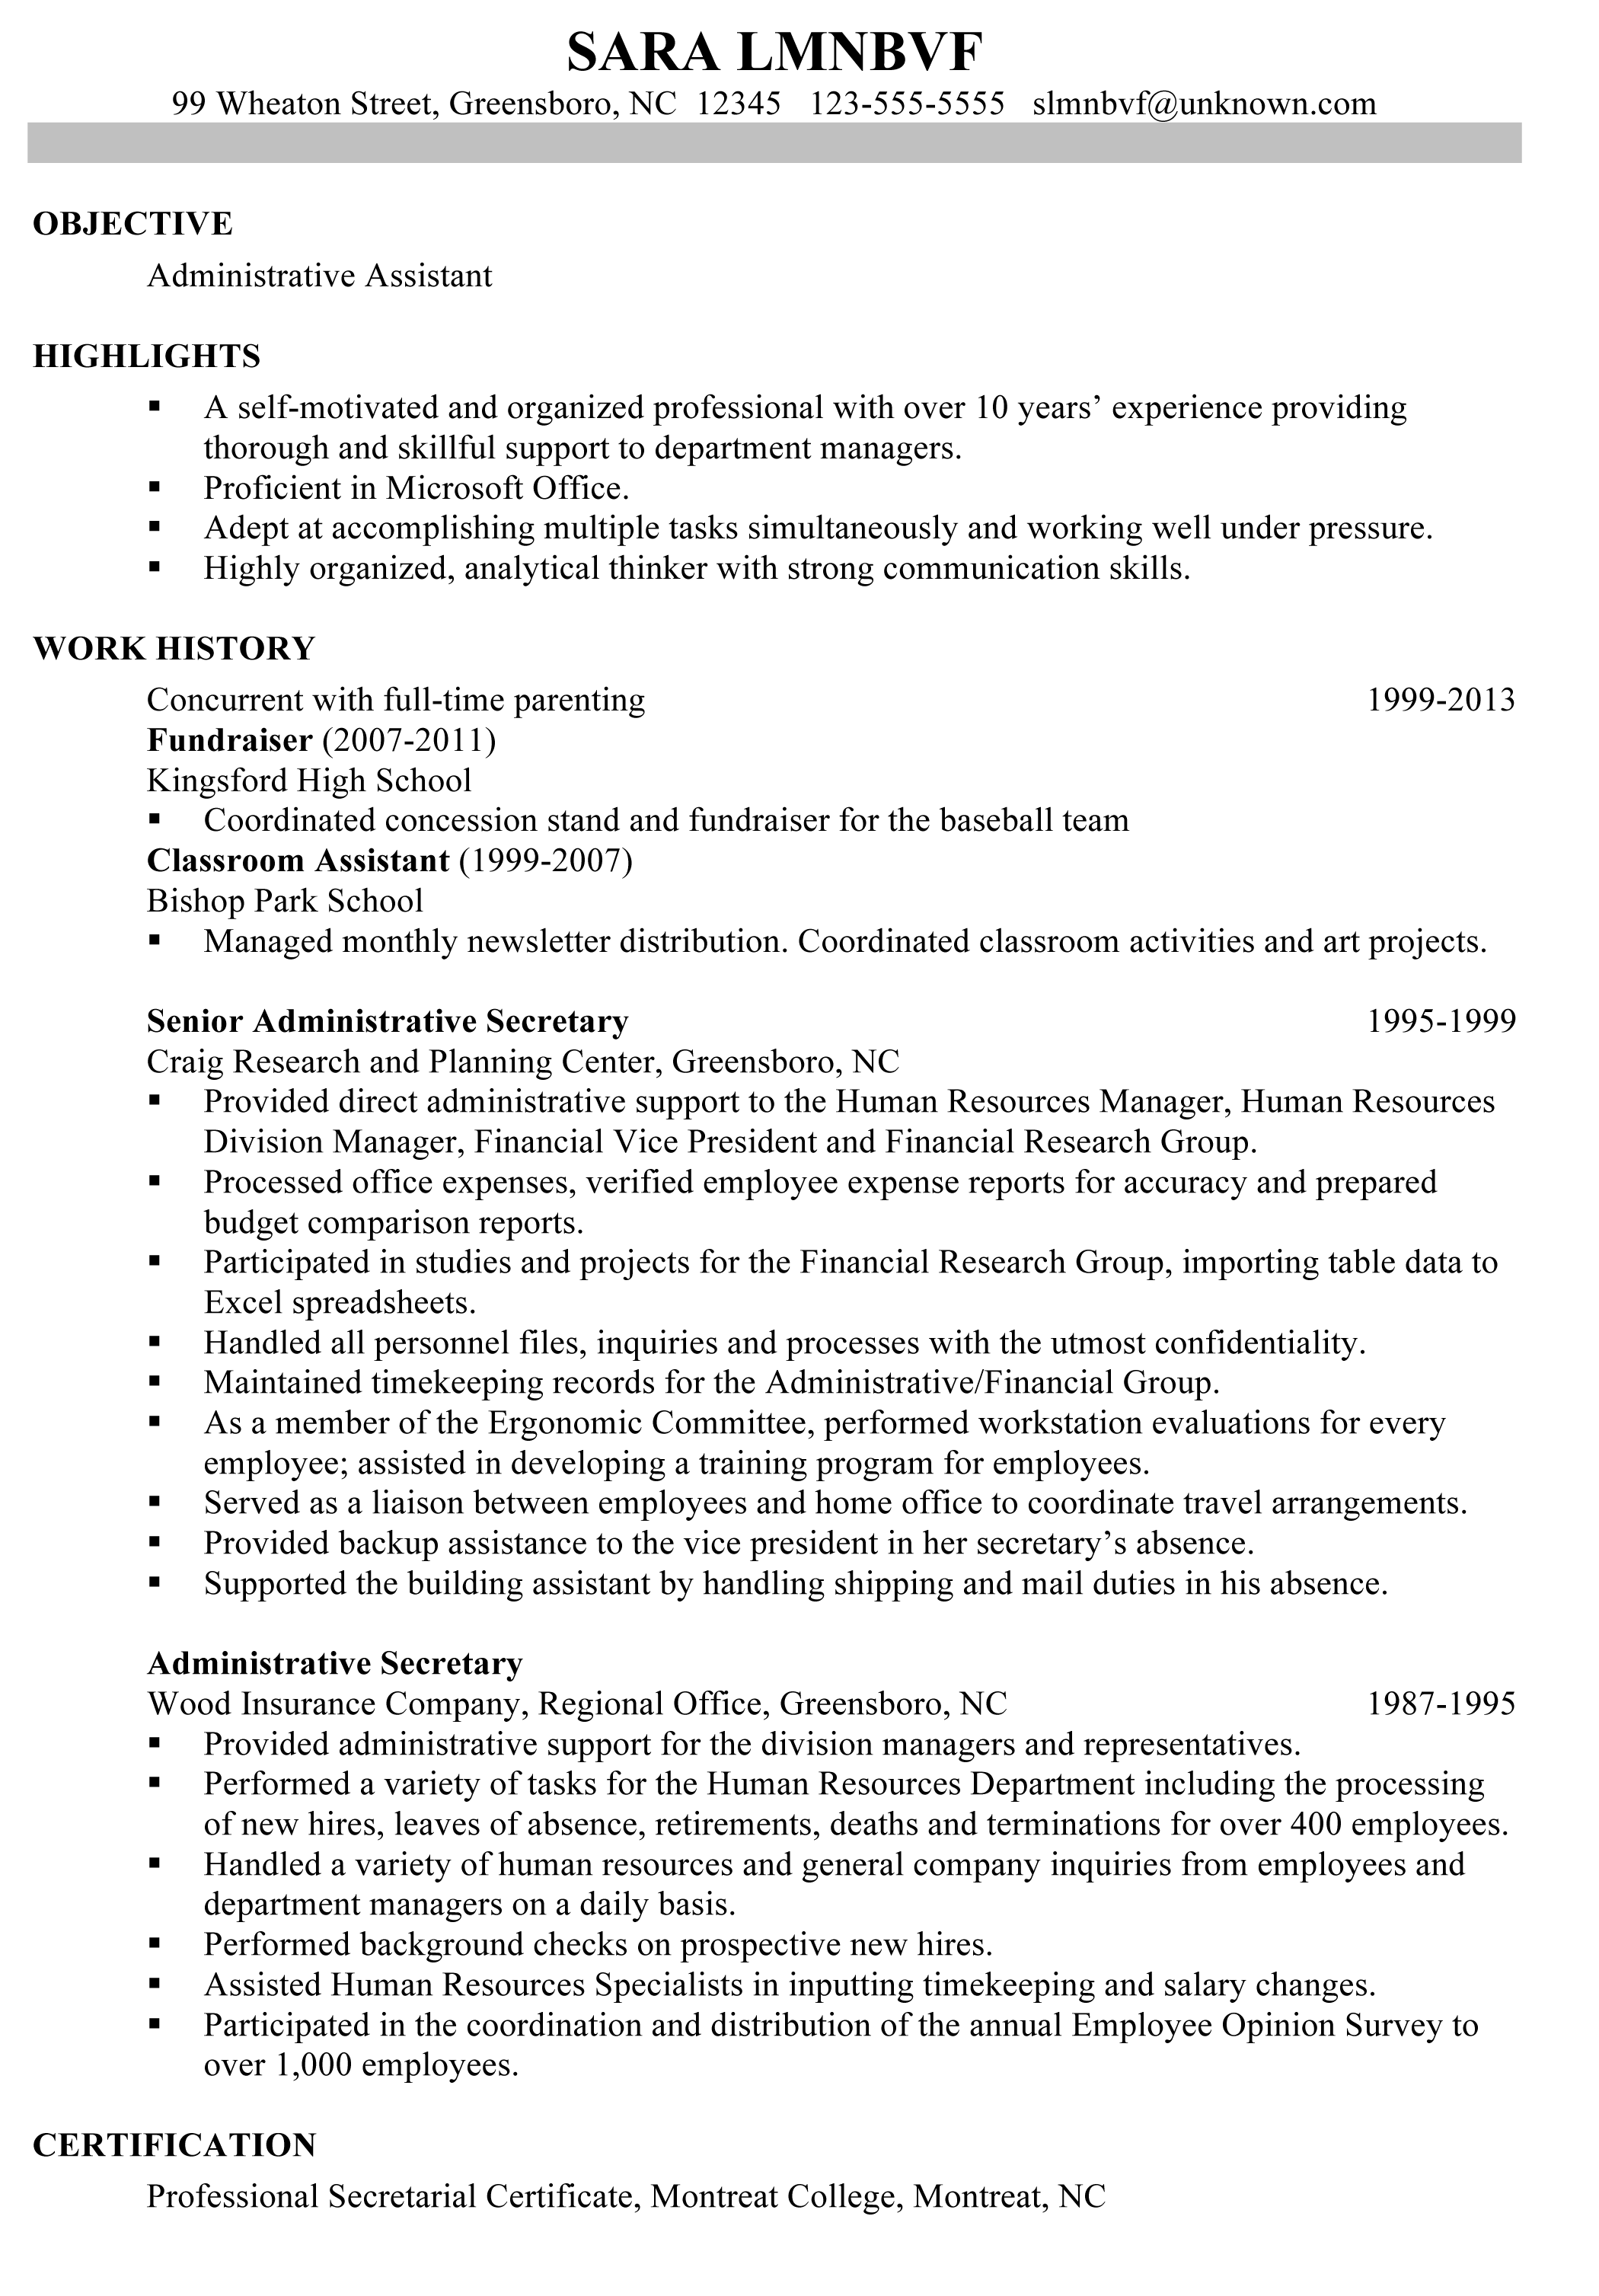 resume My Resume Builder great administrative assistant resumes using professional resume templates from my ready made builder